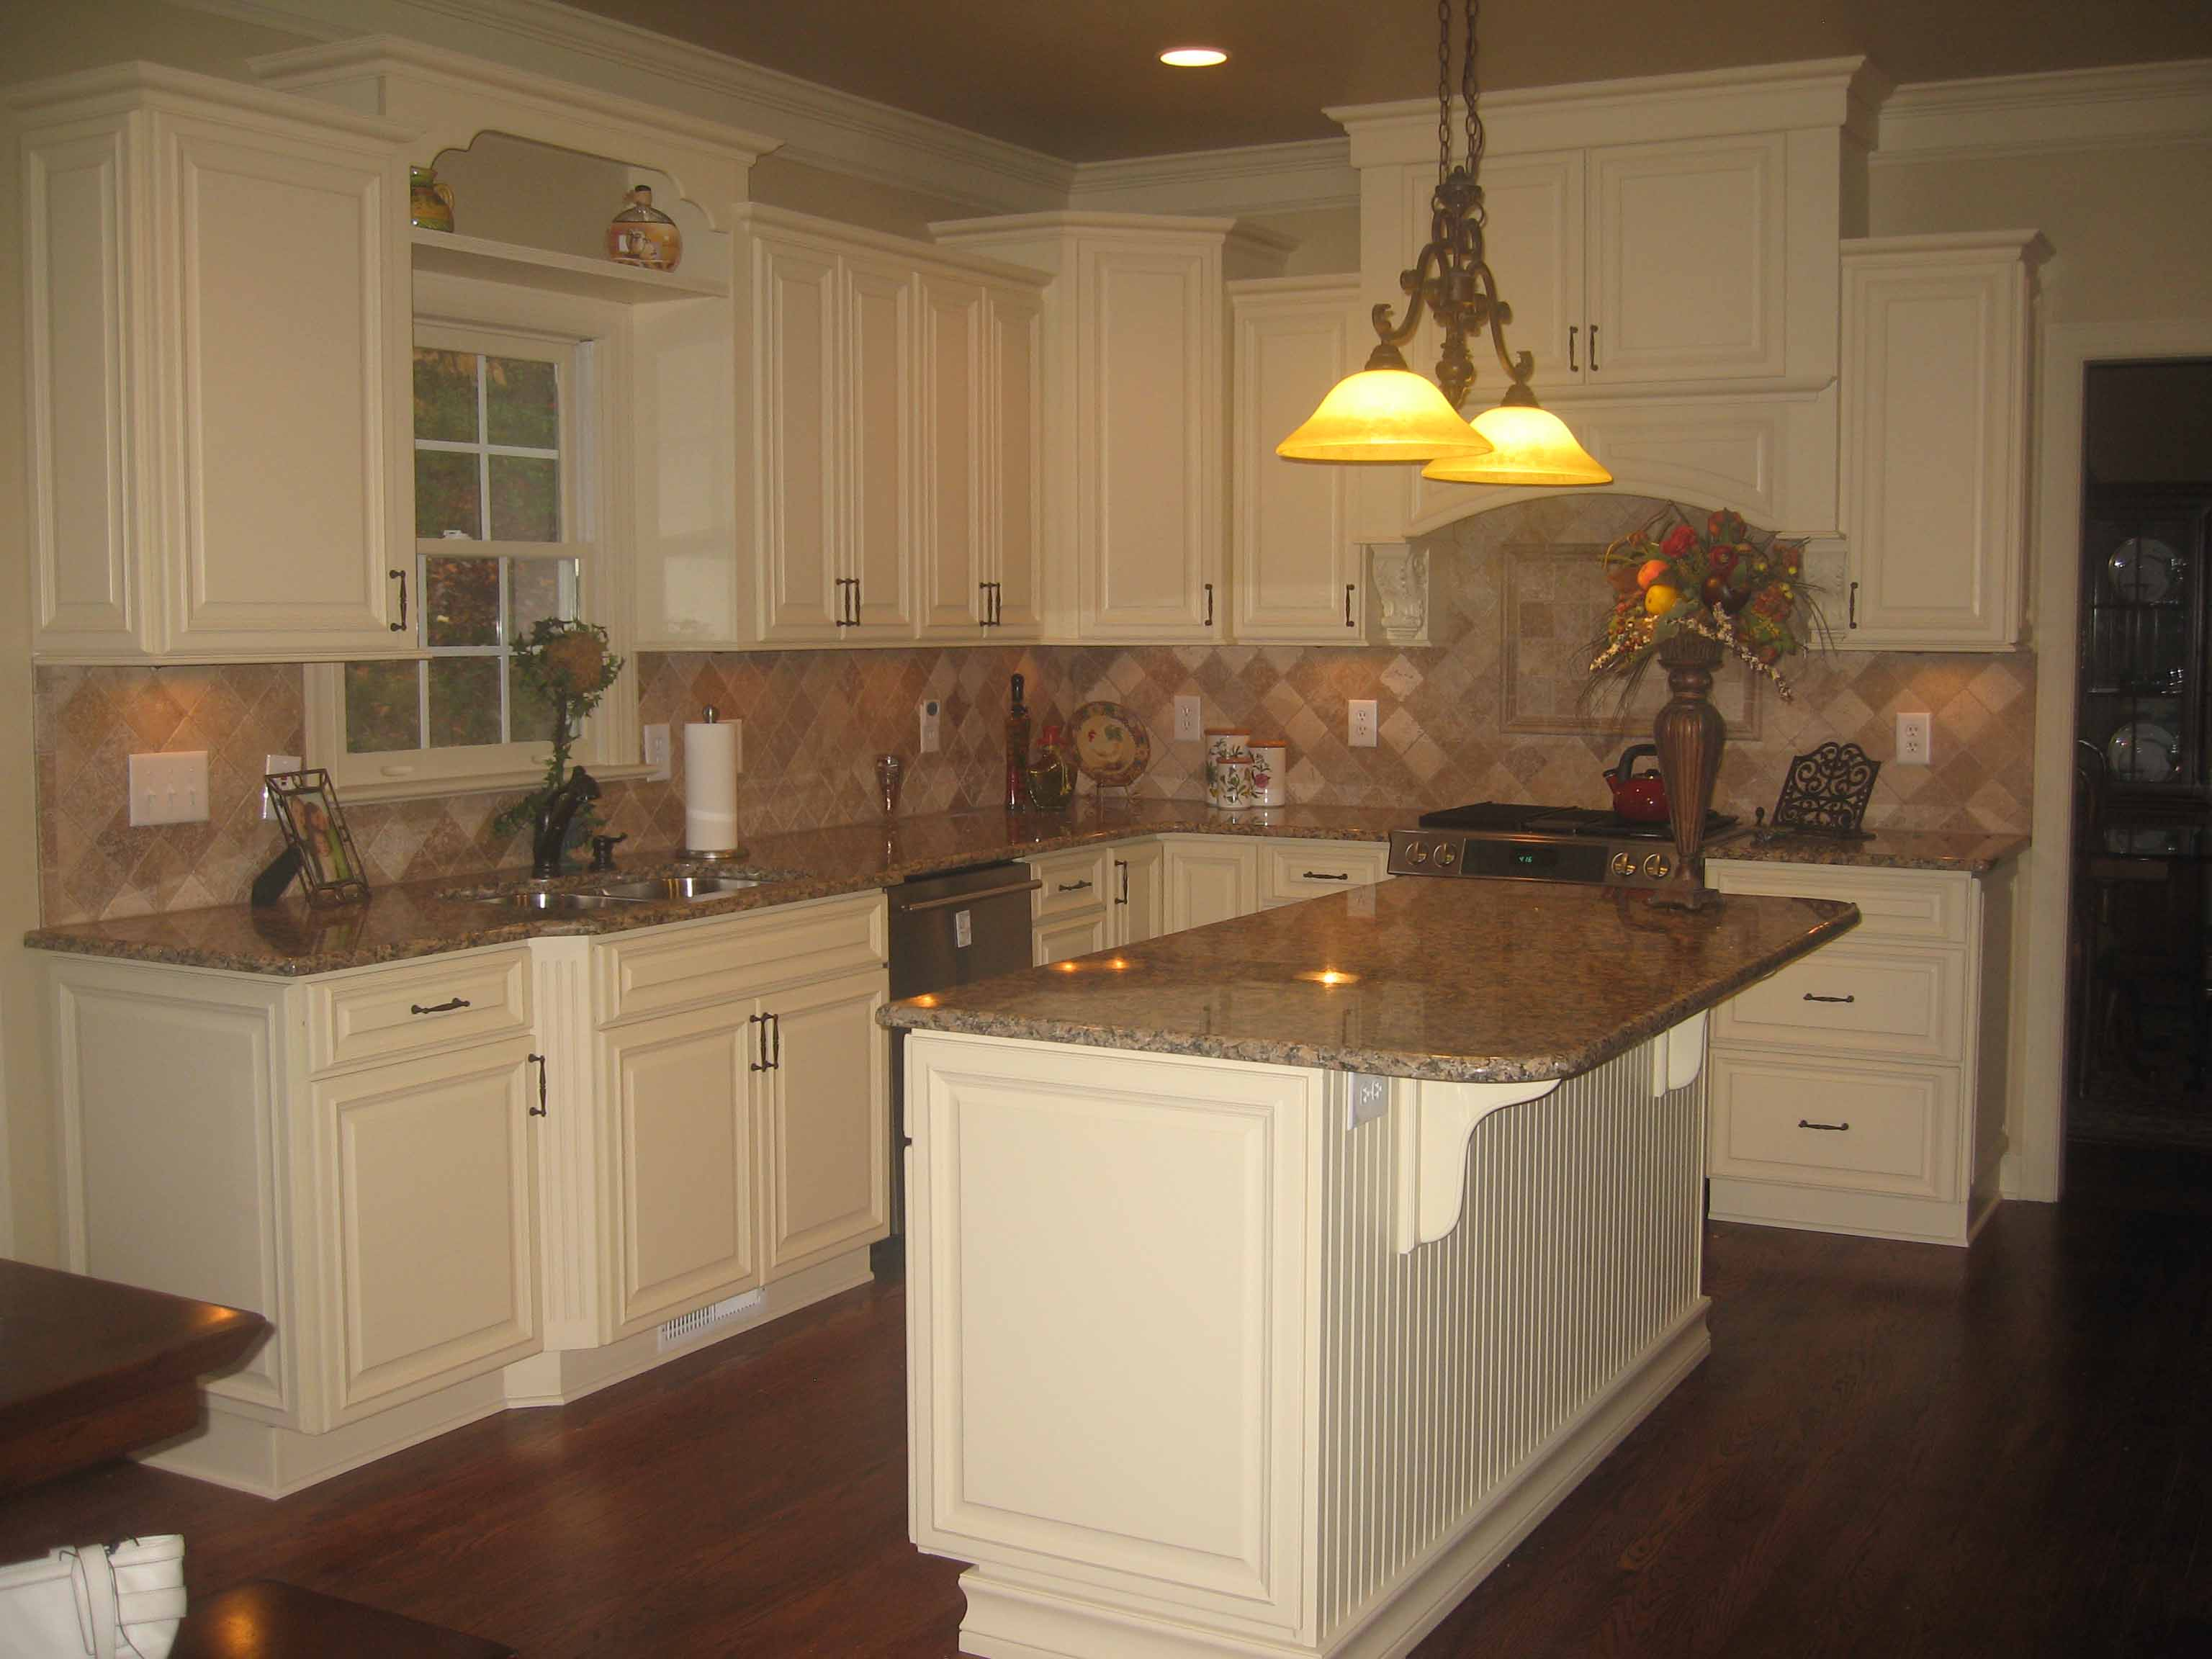 Online Kitchen Cabinets Buy Cabinets Online Rta Kitchen Cabinets Kitchen Cabinets